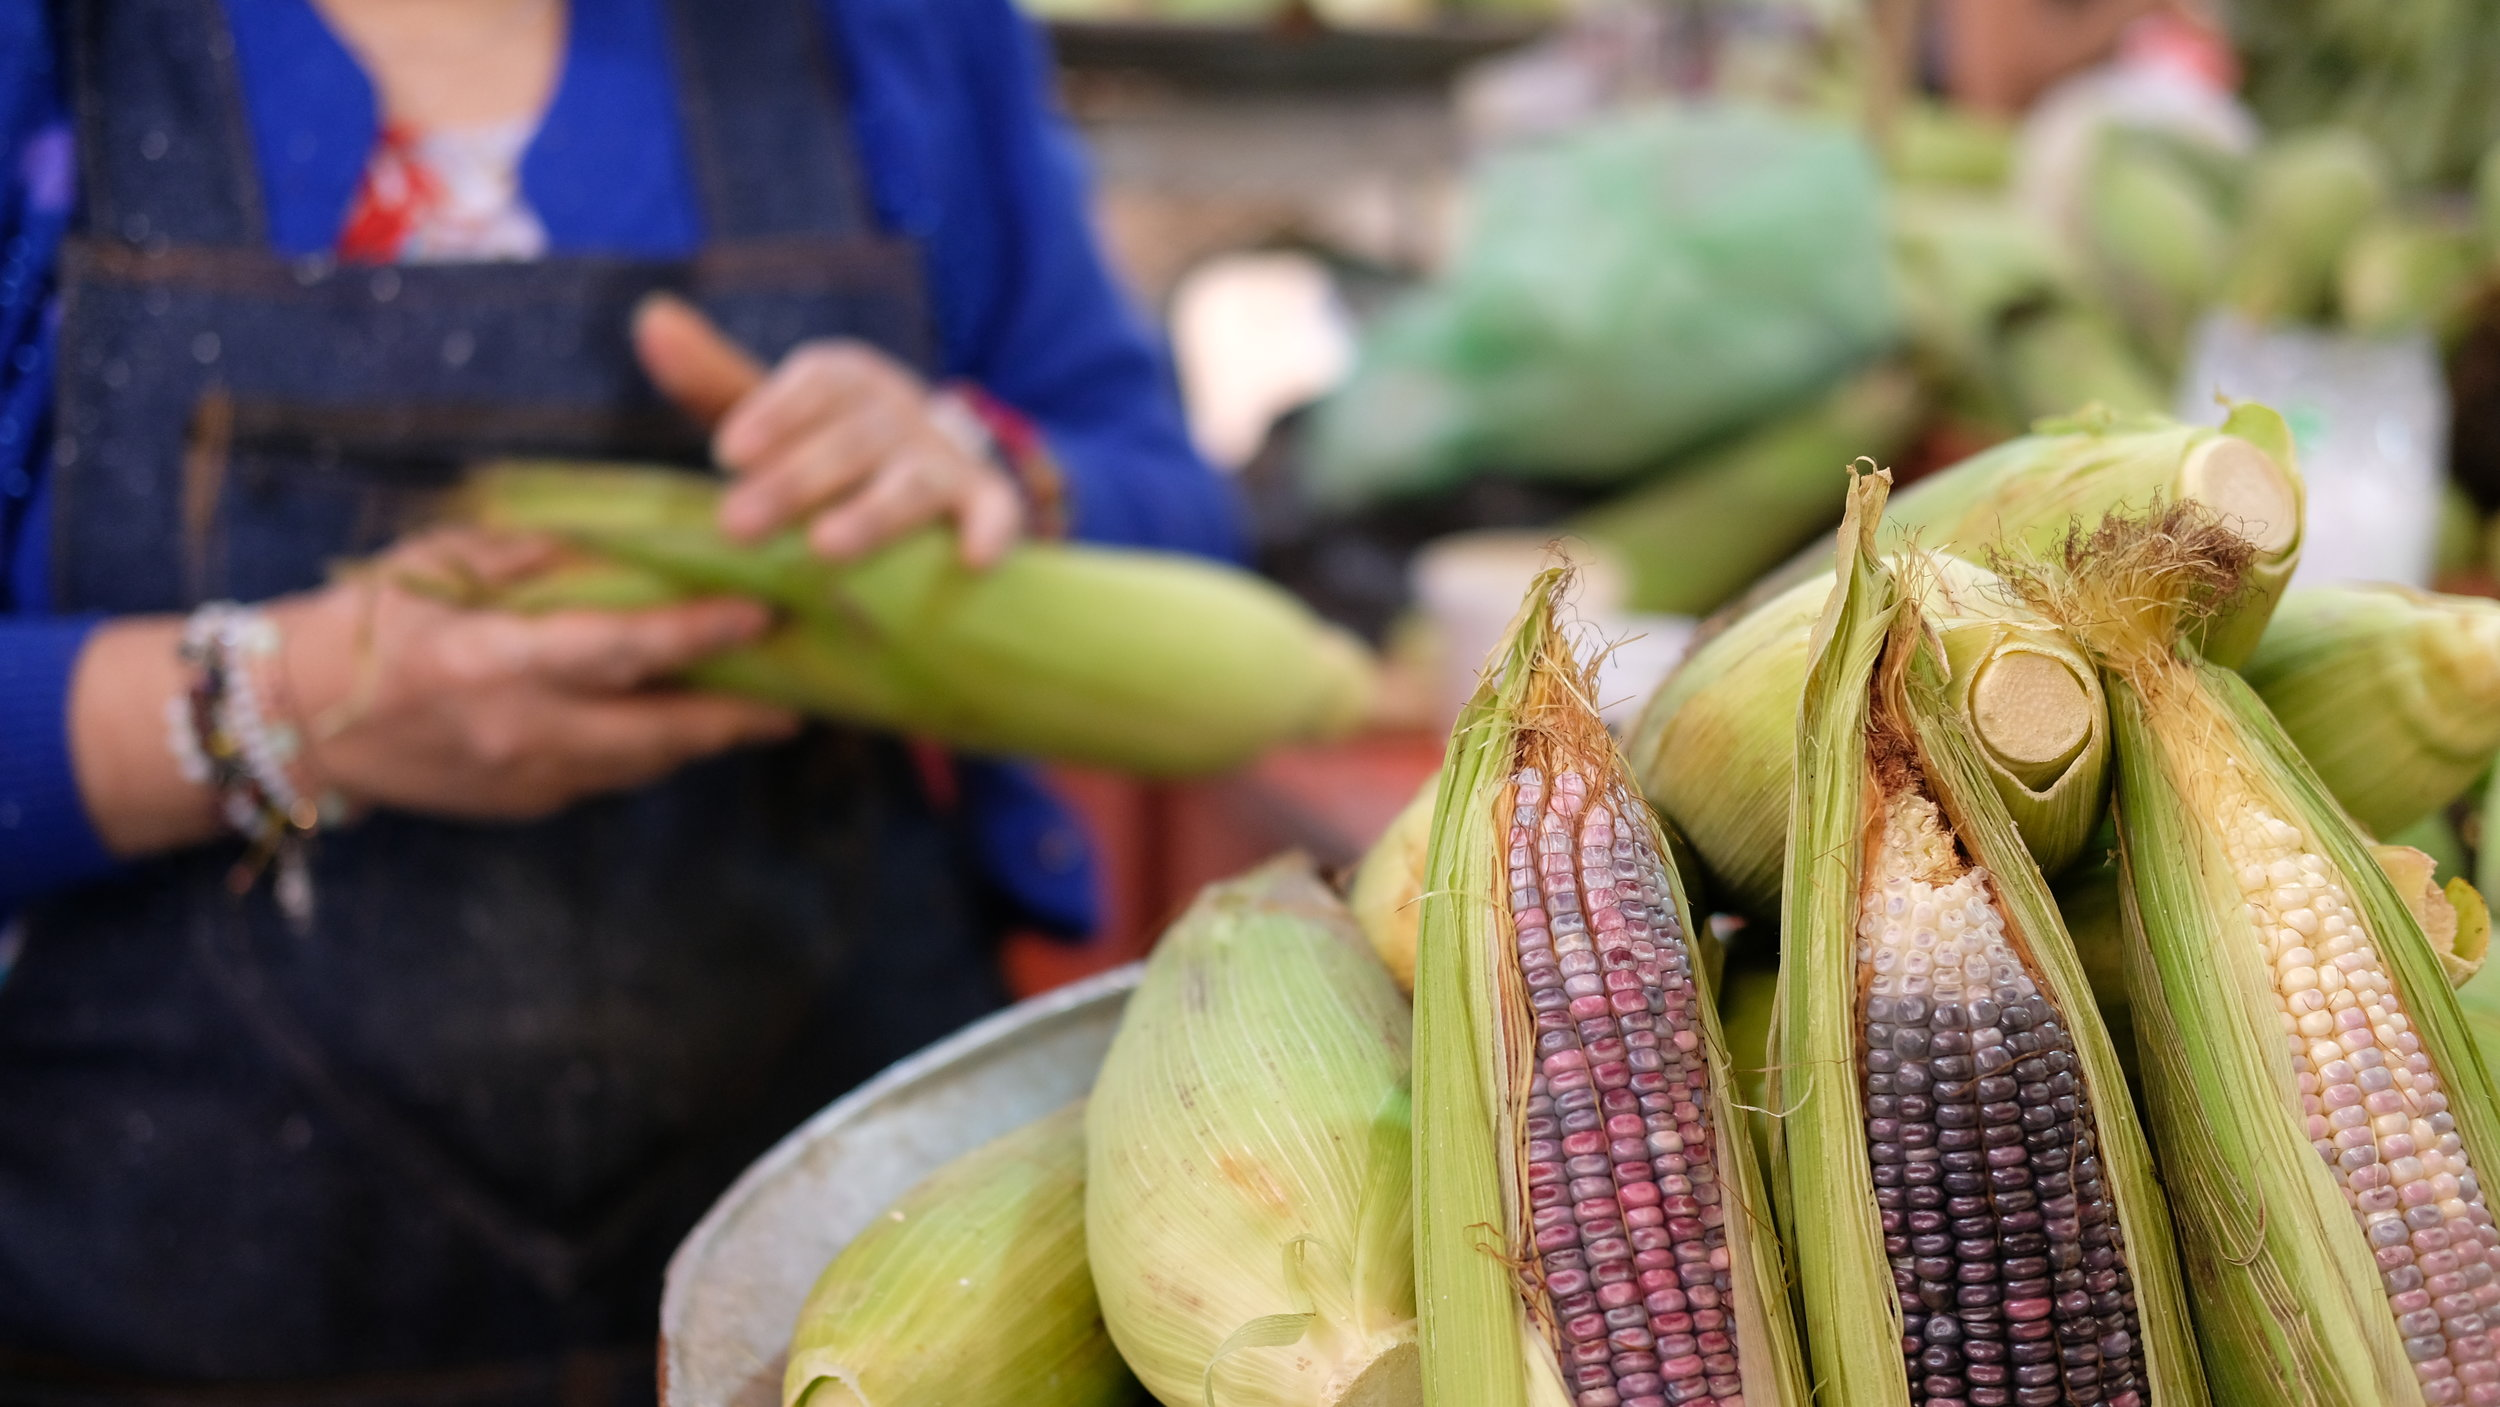 One of the many sellers of heirloom Mexican corn.